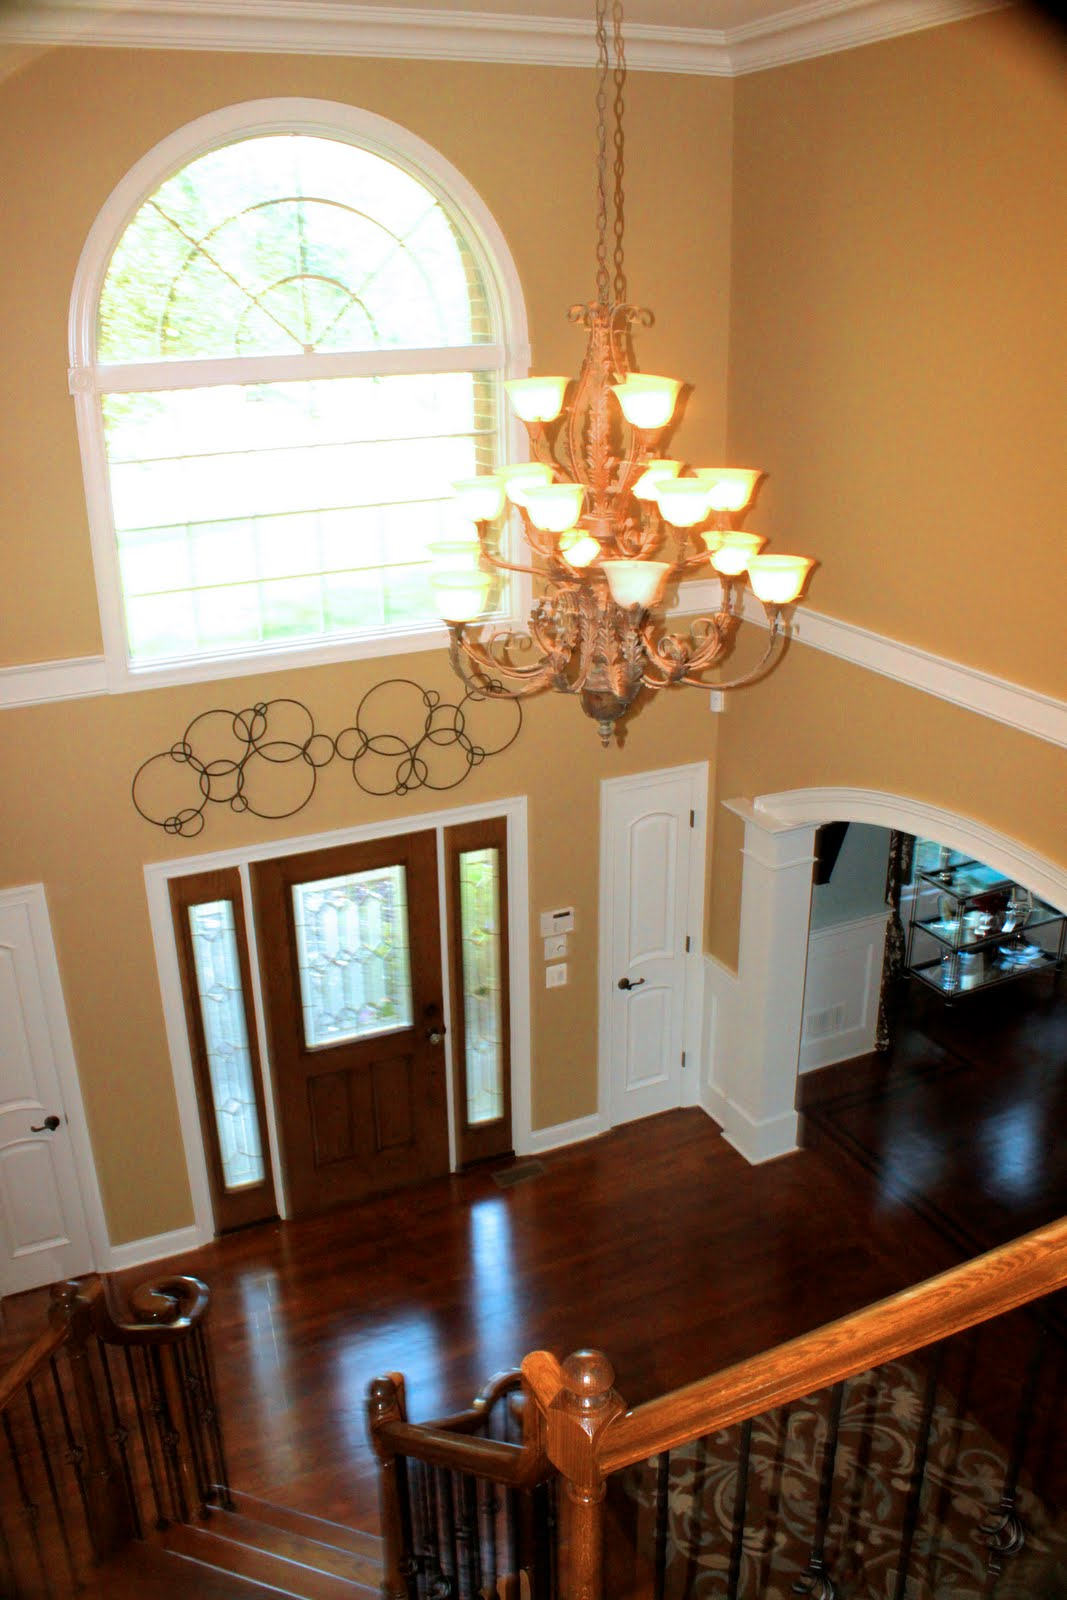 Husker dream homes bright ideas for your west omaha for Foyer ceiling design